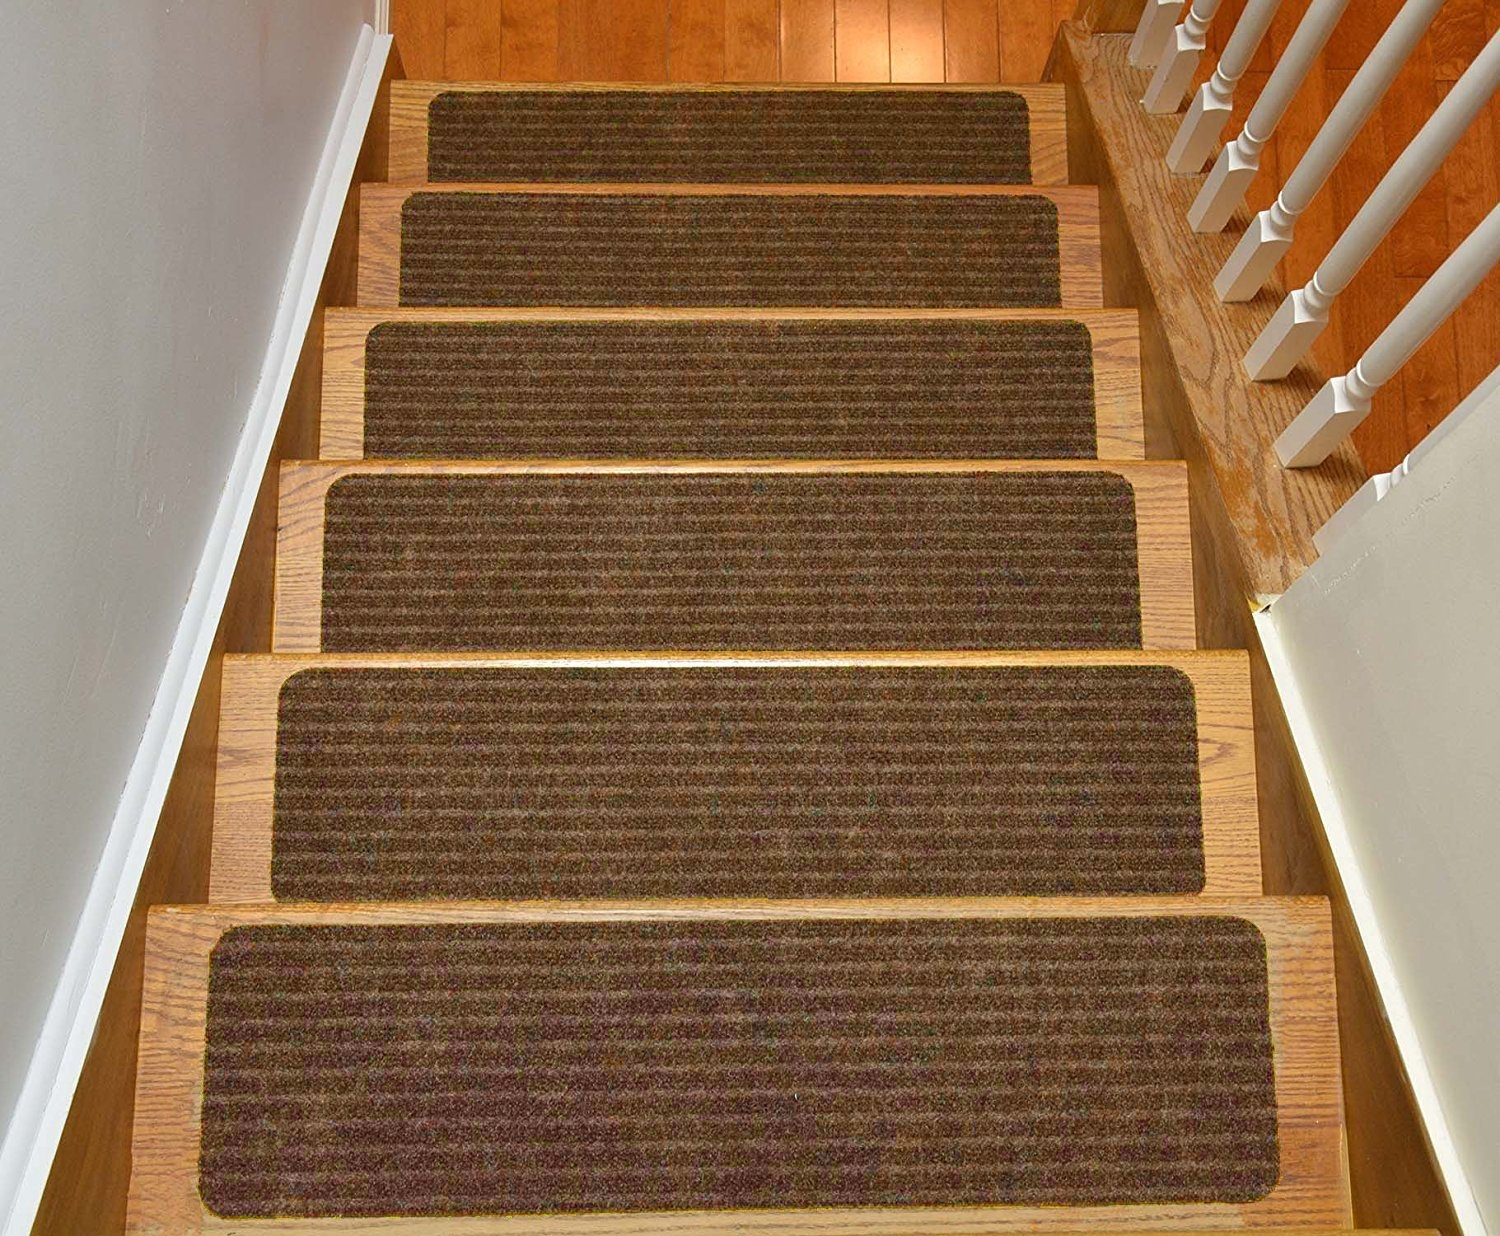 Stair Treads Collection Set Of 13 Indoor Skid Slip Resistant Brown Inside Skid Resistant Stair Treads (Image 14 of 15)